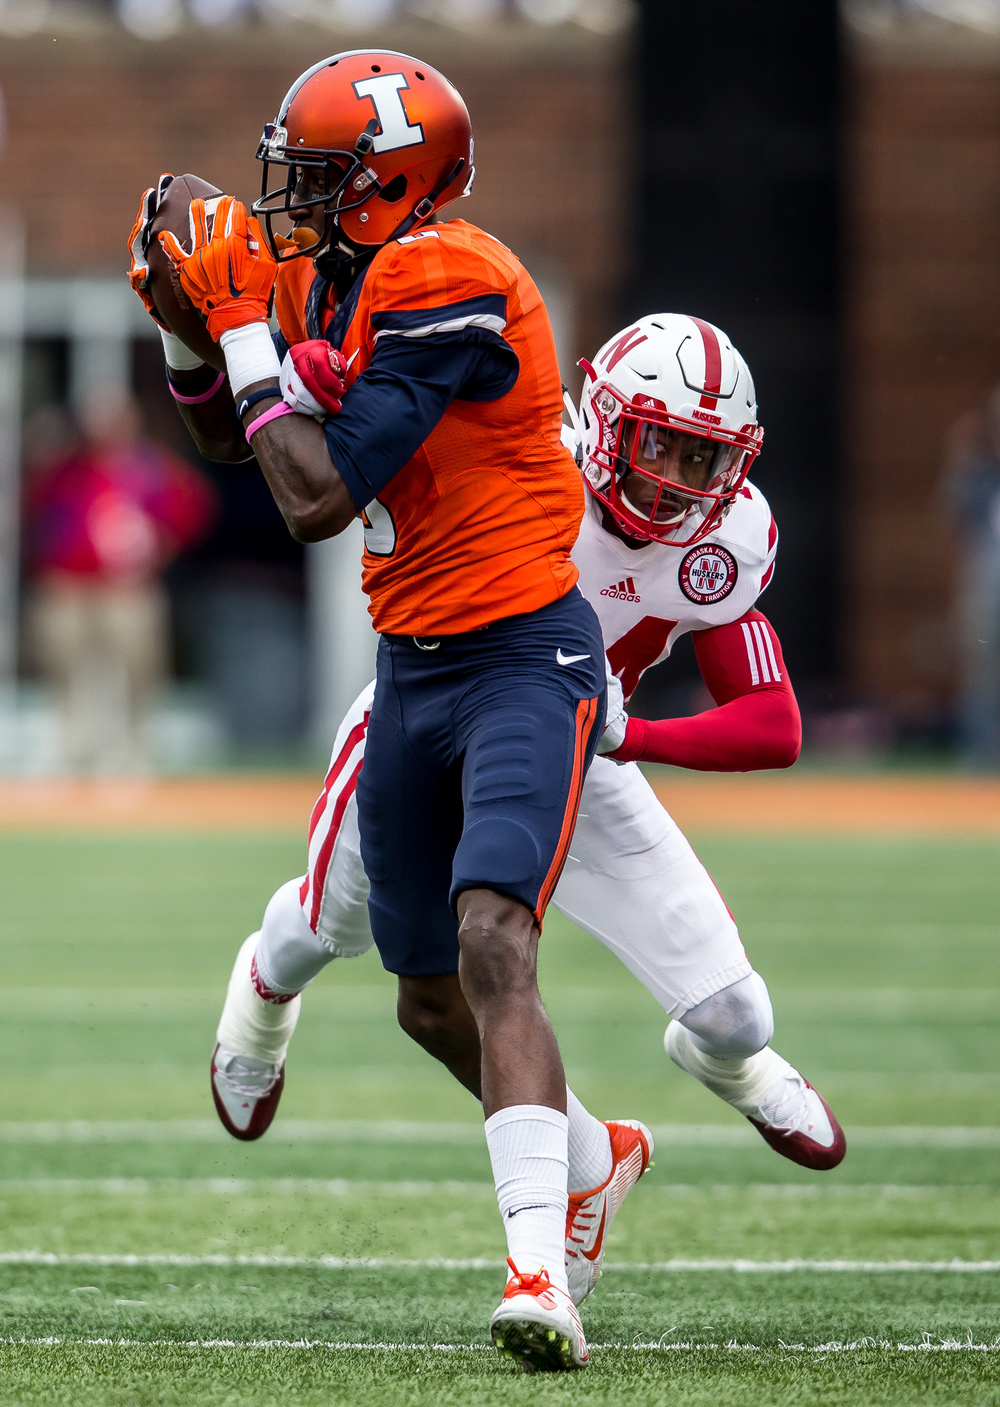 Illinois Fighting Illini wide receiver Geronimo Allison (8) makes a 26-yard reception against Nebraska Cornhuskers cornerback Jonathan Rose (14) in the first quarter at Memorial Stadium, Saturday, Oct. 3, 2015, in Champaign, Ill. Justin L. Fowler/The State Journal-Register